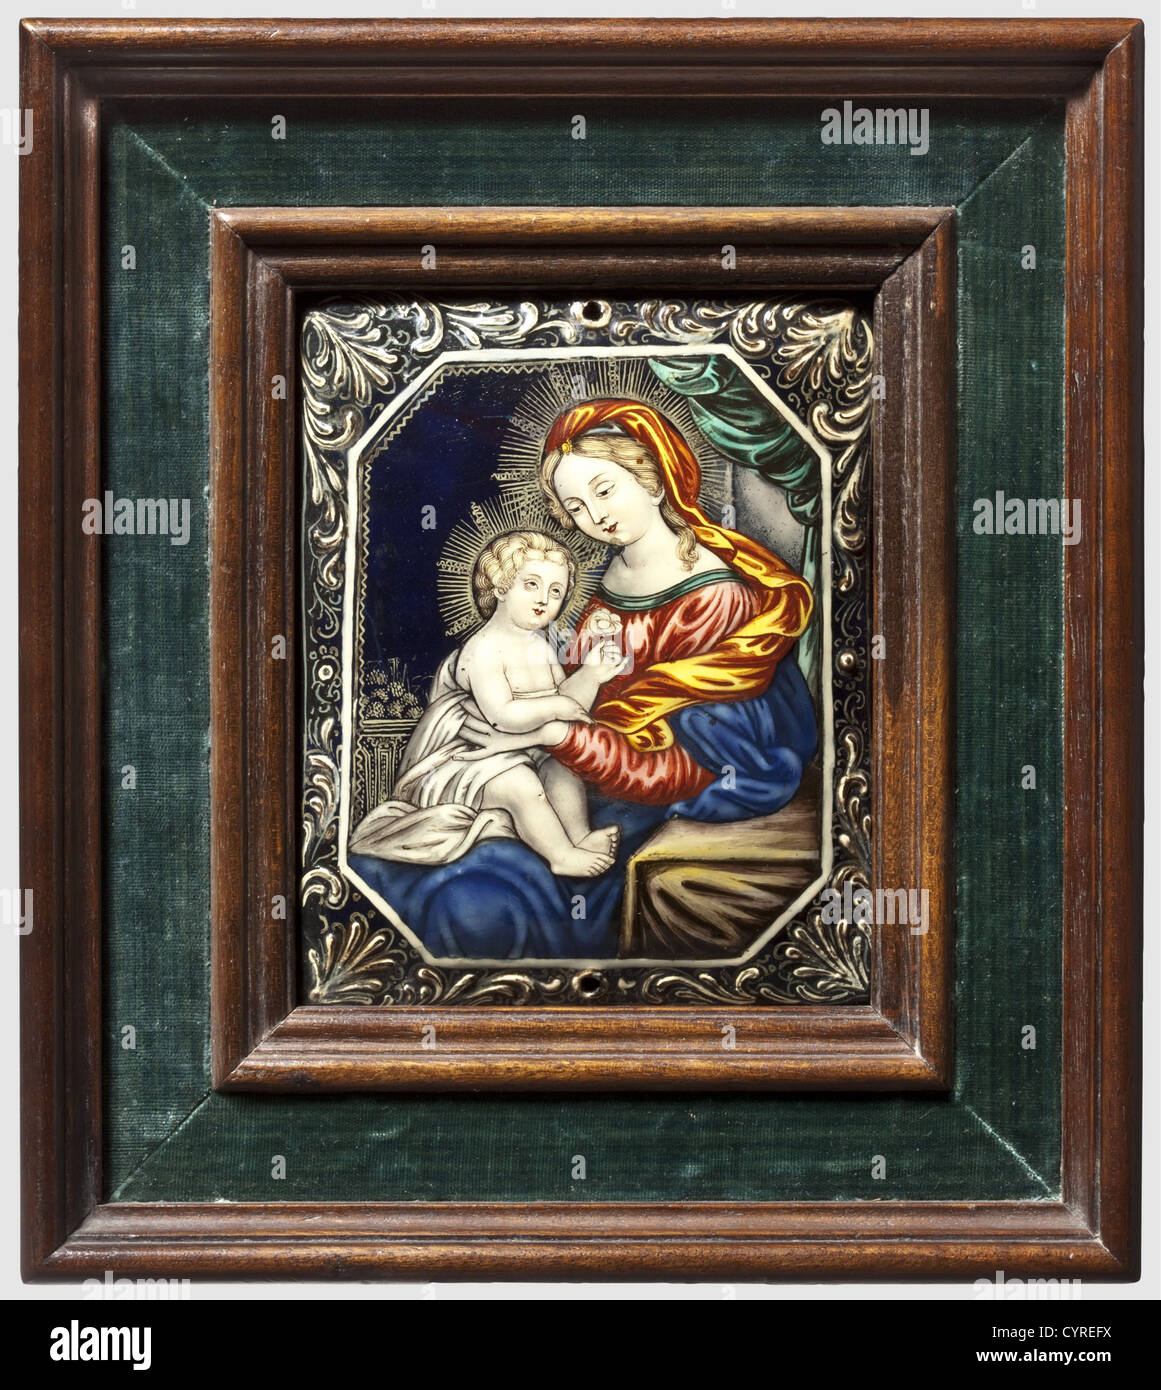 Mary and child, Limoges, 18th century Cambered copper plate with fine polychrome, enamel painting. Portrayal of - Stock Image